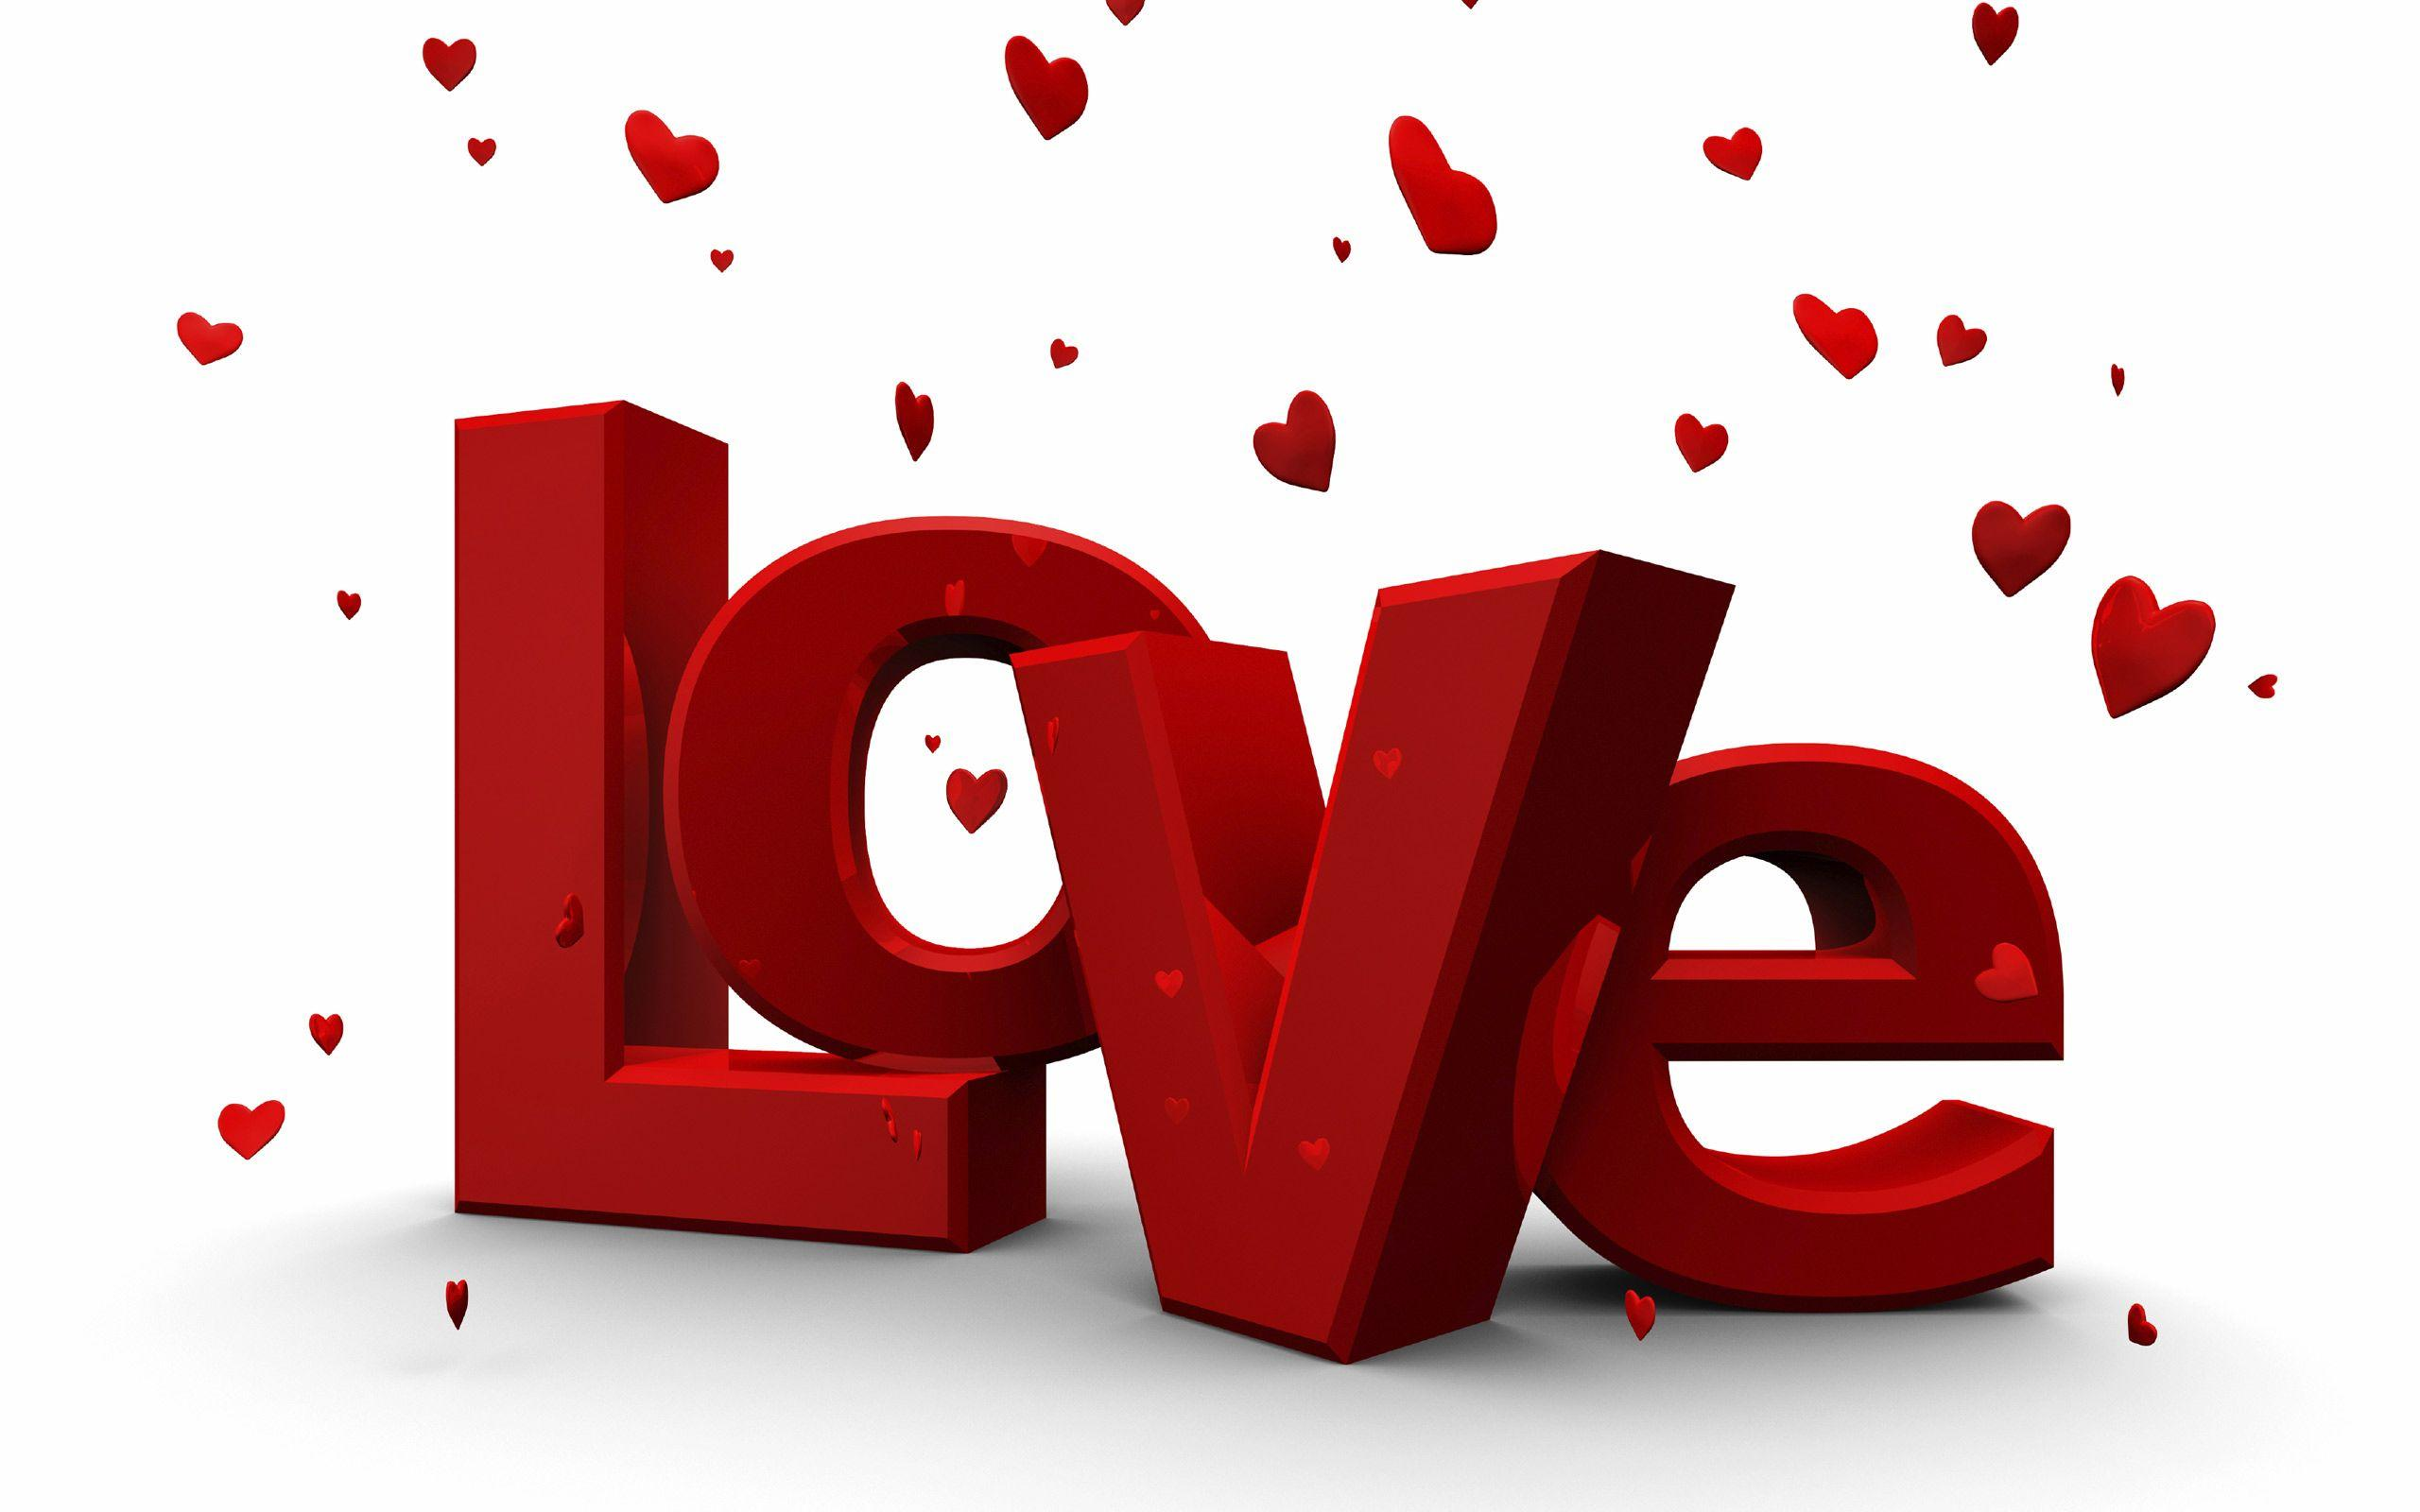 Valentine&Day Hd Backgrounds Wallpapers 38 HD Wallpapers